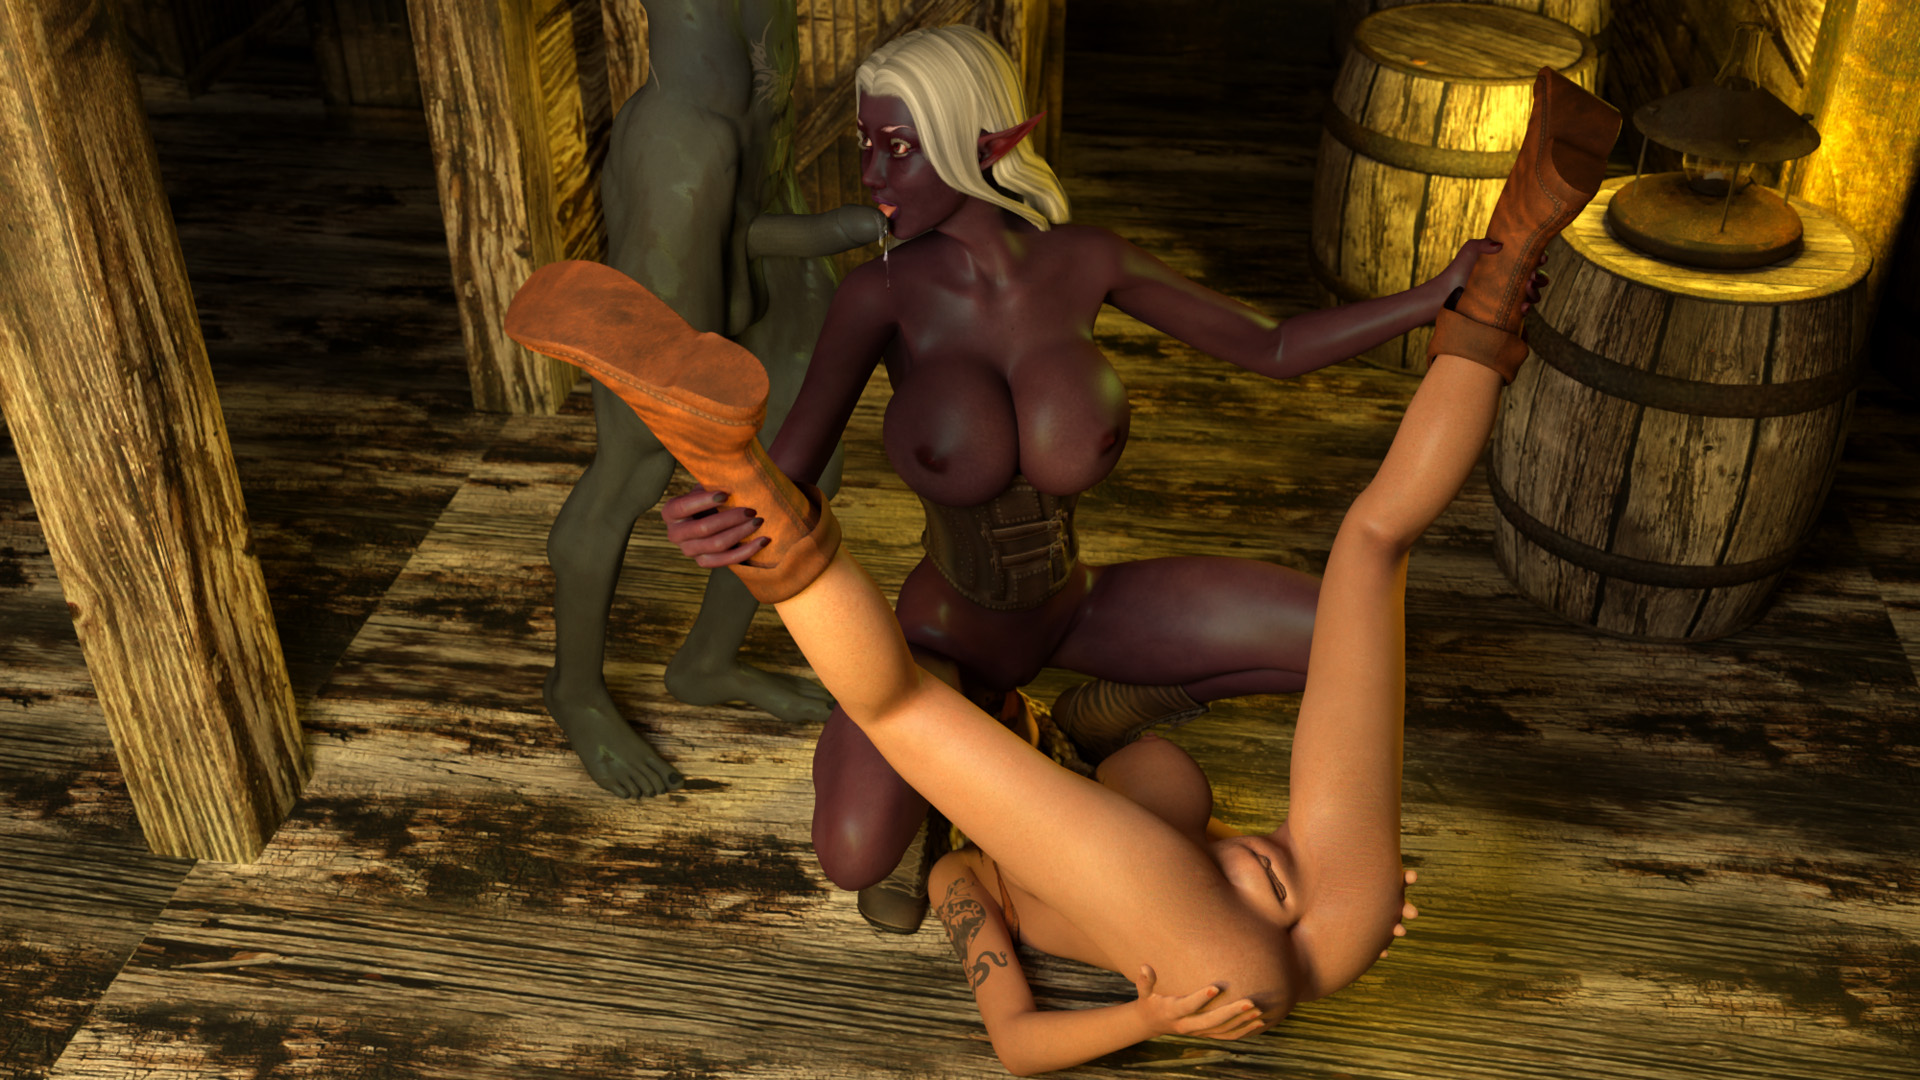 Nude elves in leather chaps erotic scene